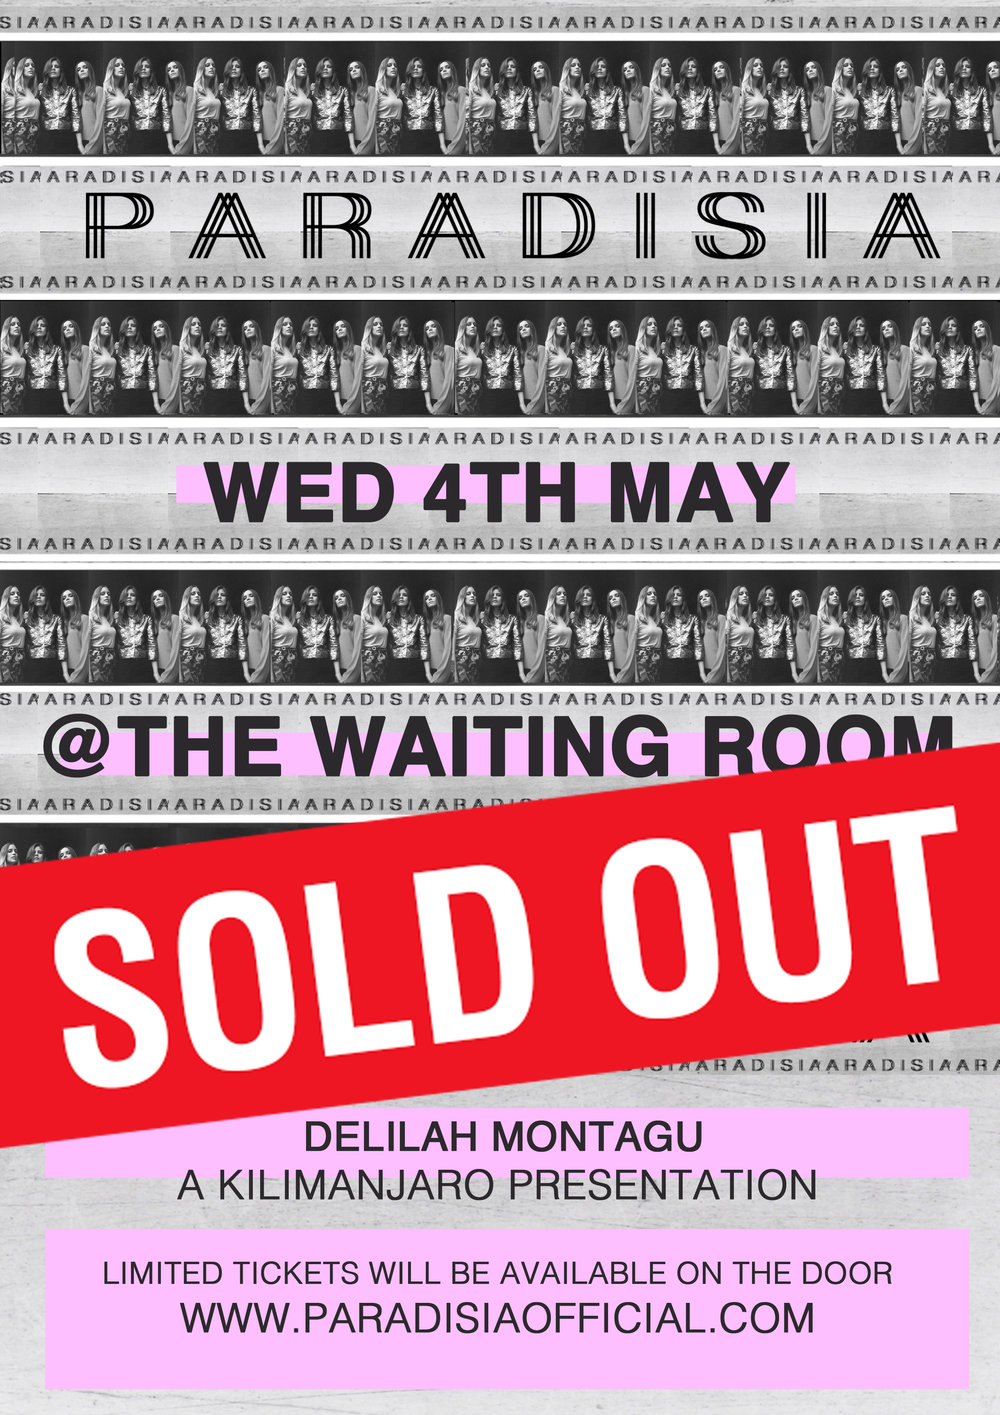 PARADISIA flyer sold out!.jpg